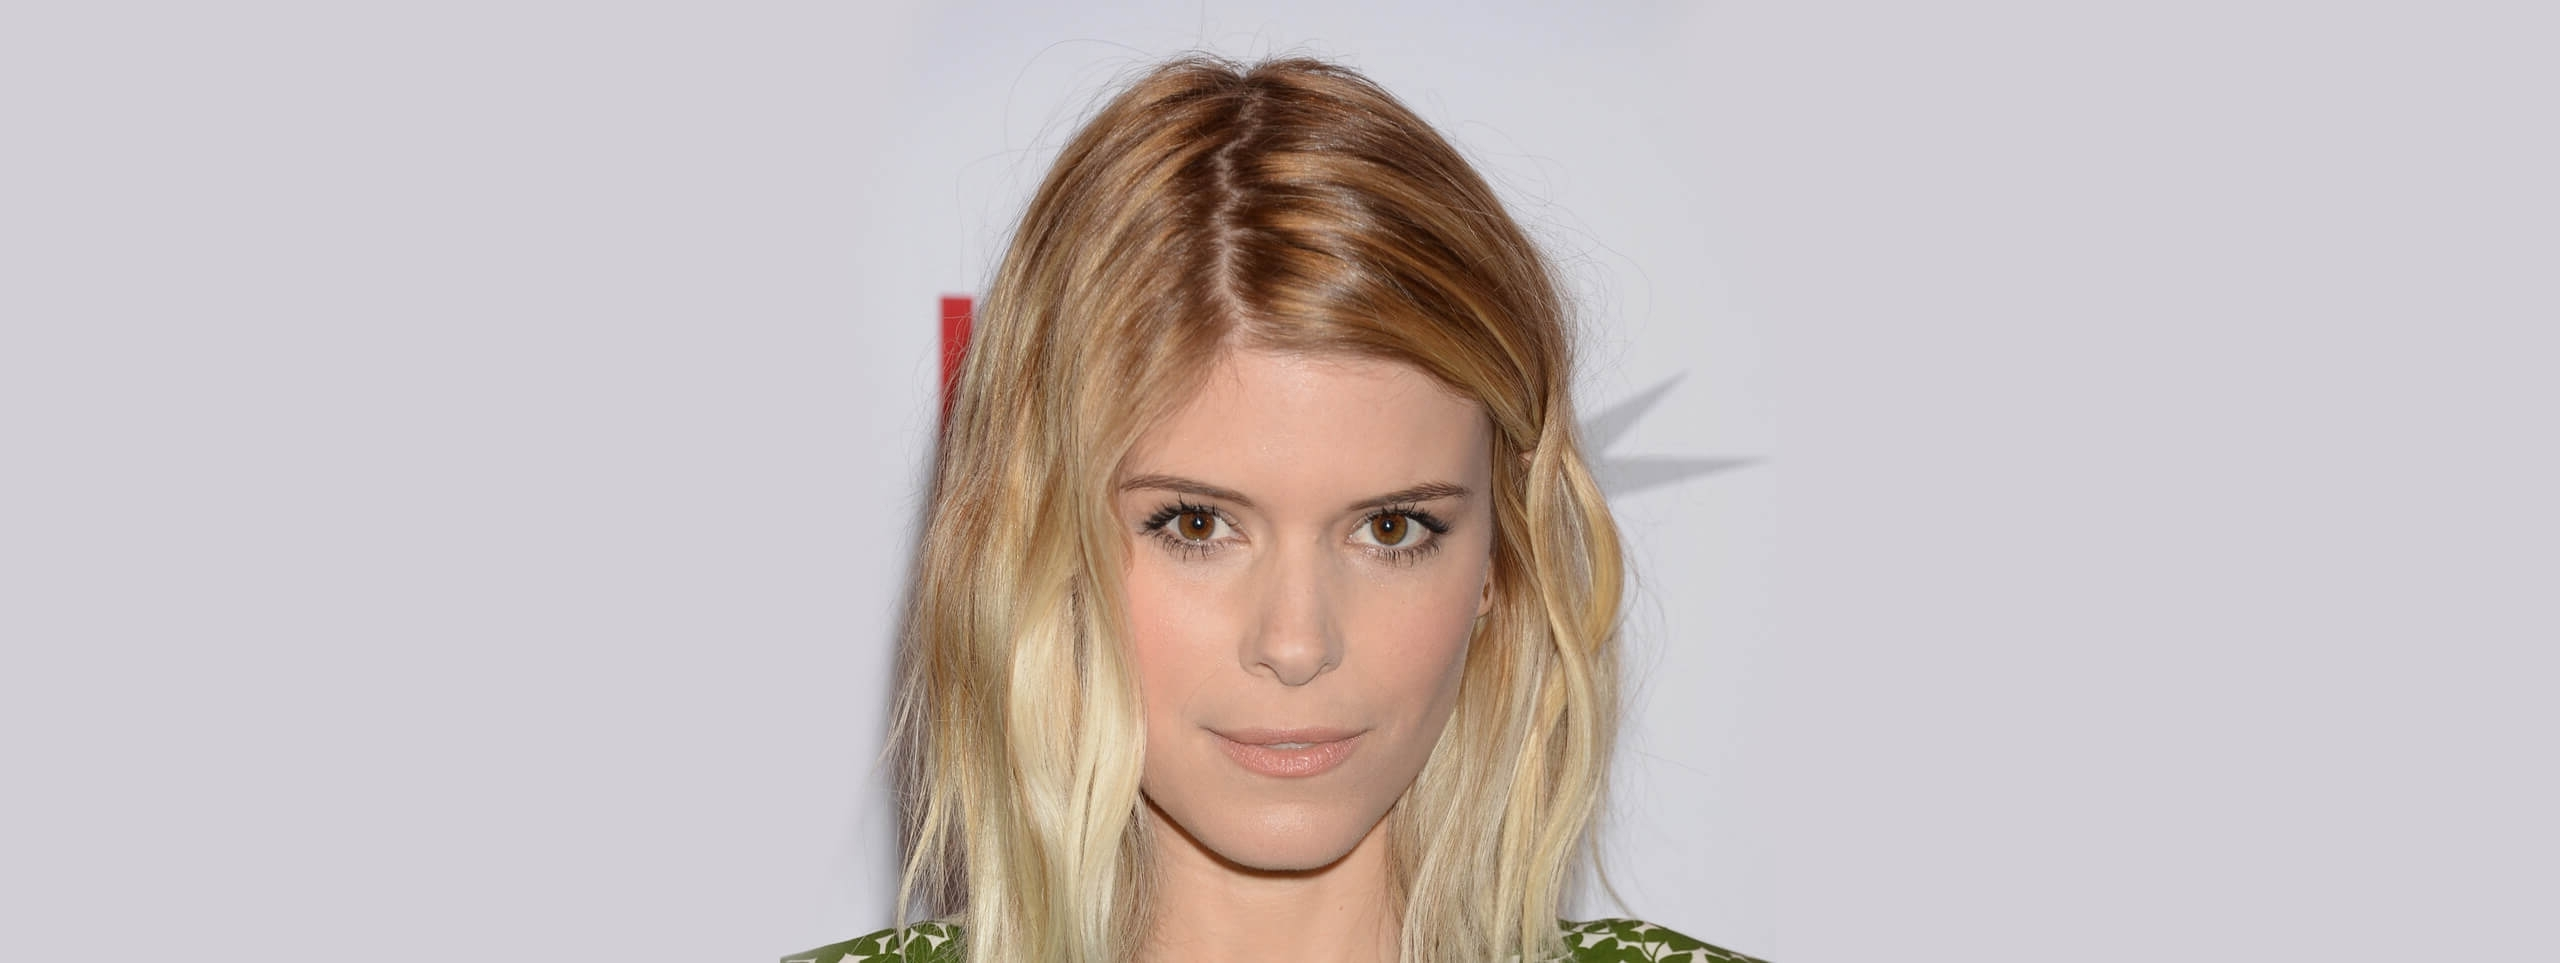 Famous Shaggy Highlighted Blonde Bob Hairstyles Pertaining To Hair Color Ideas: Find The Right Color For You (View 12 of 20)